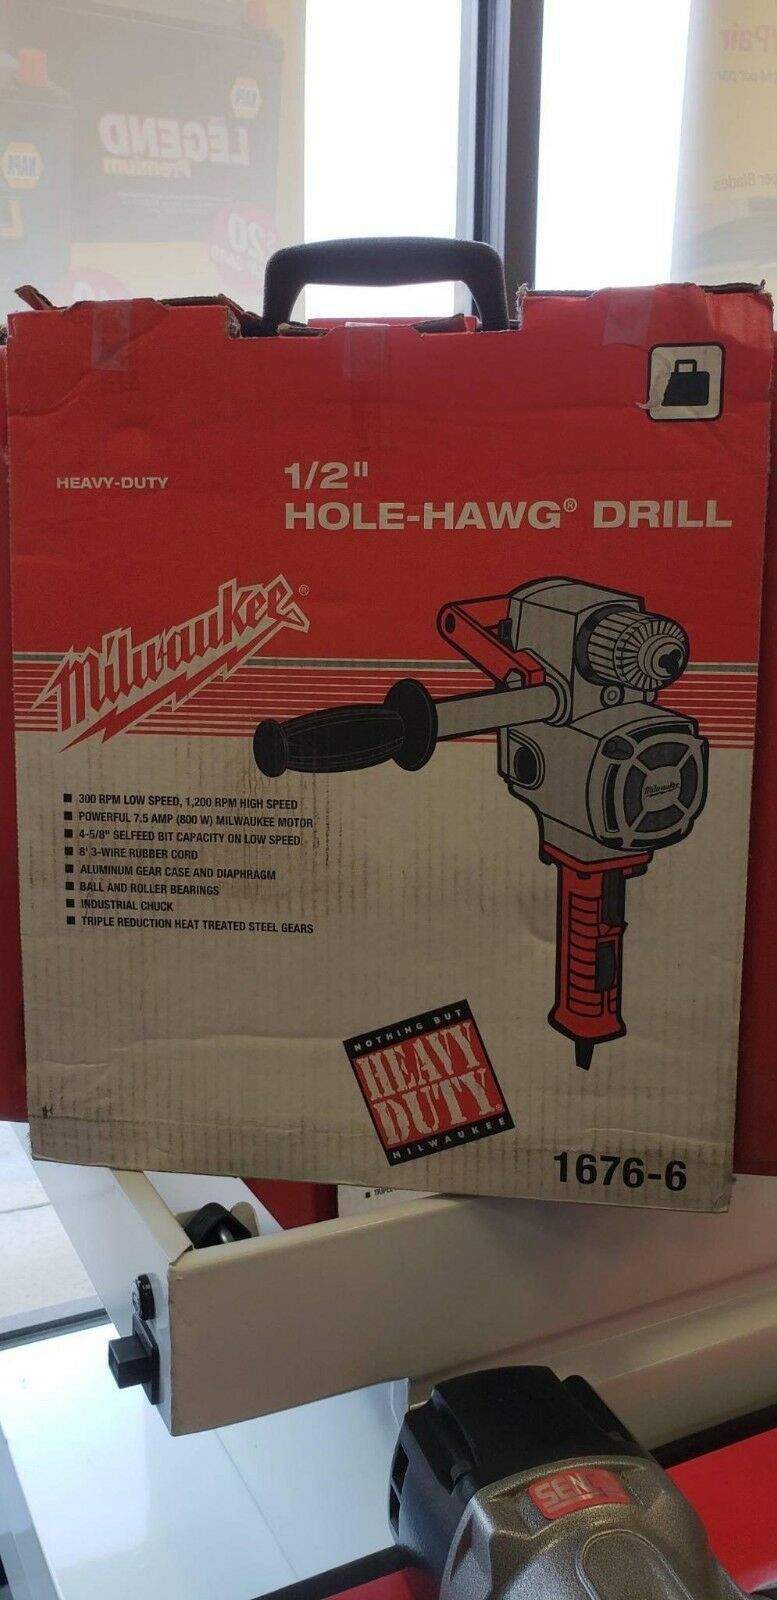 Milwaukee 1676-6 1 2  Hole-Hawg Drill 300 1200 RPM Kit